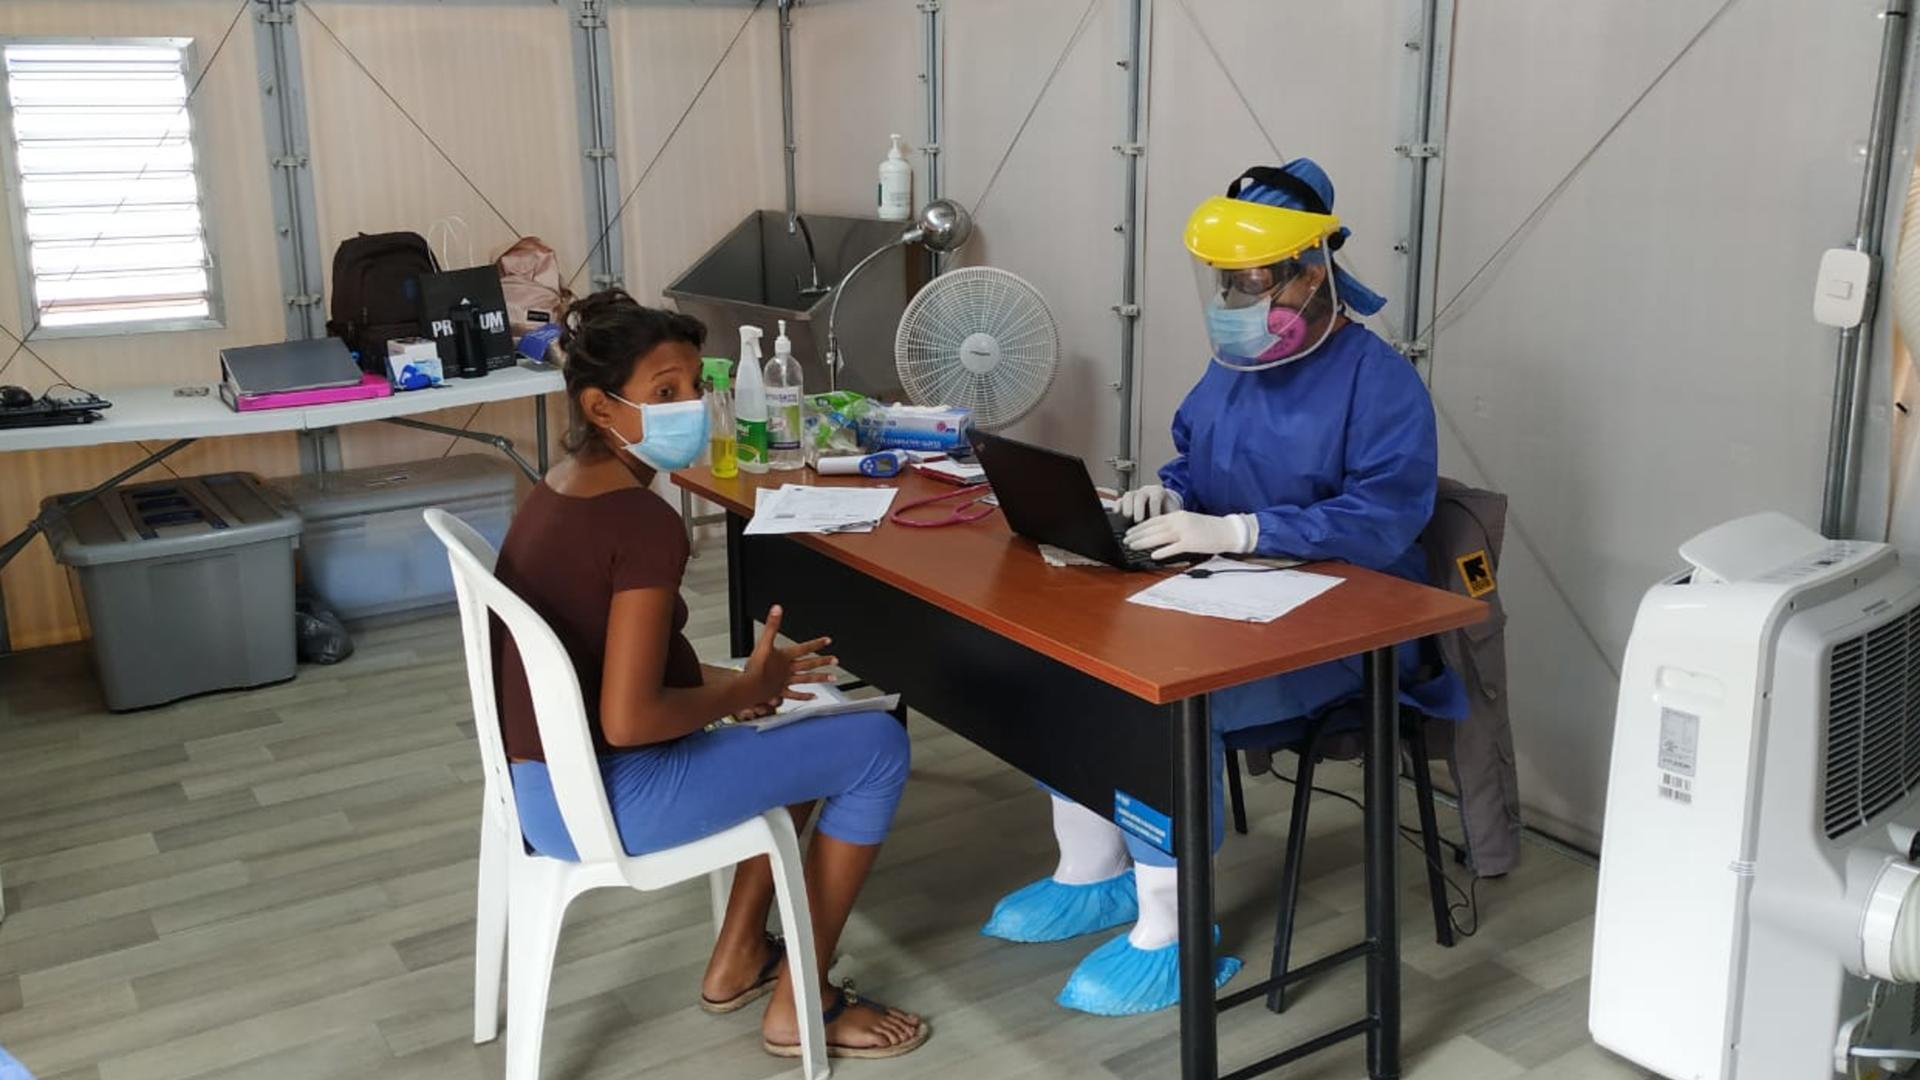 A woman sits at a chair at a table with doctor in full PPE opposite her. They are in a temporary clinic set up by the IRC at the Simón Bolívar bridge.